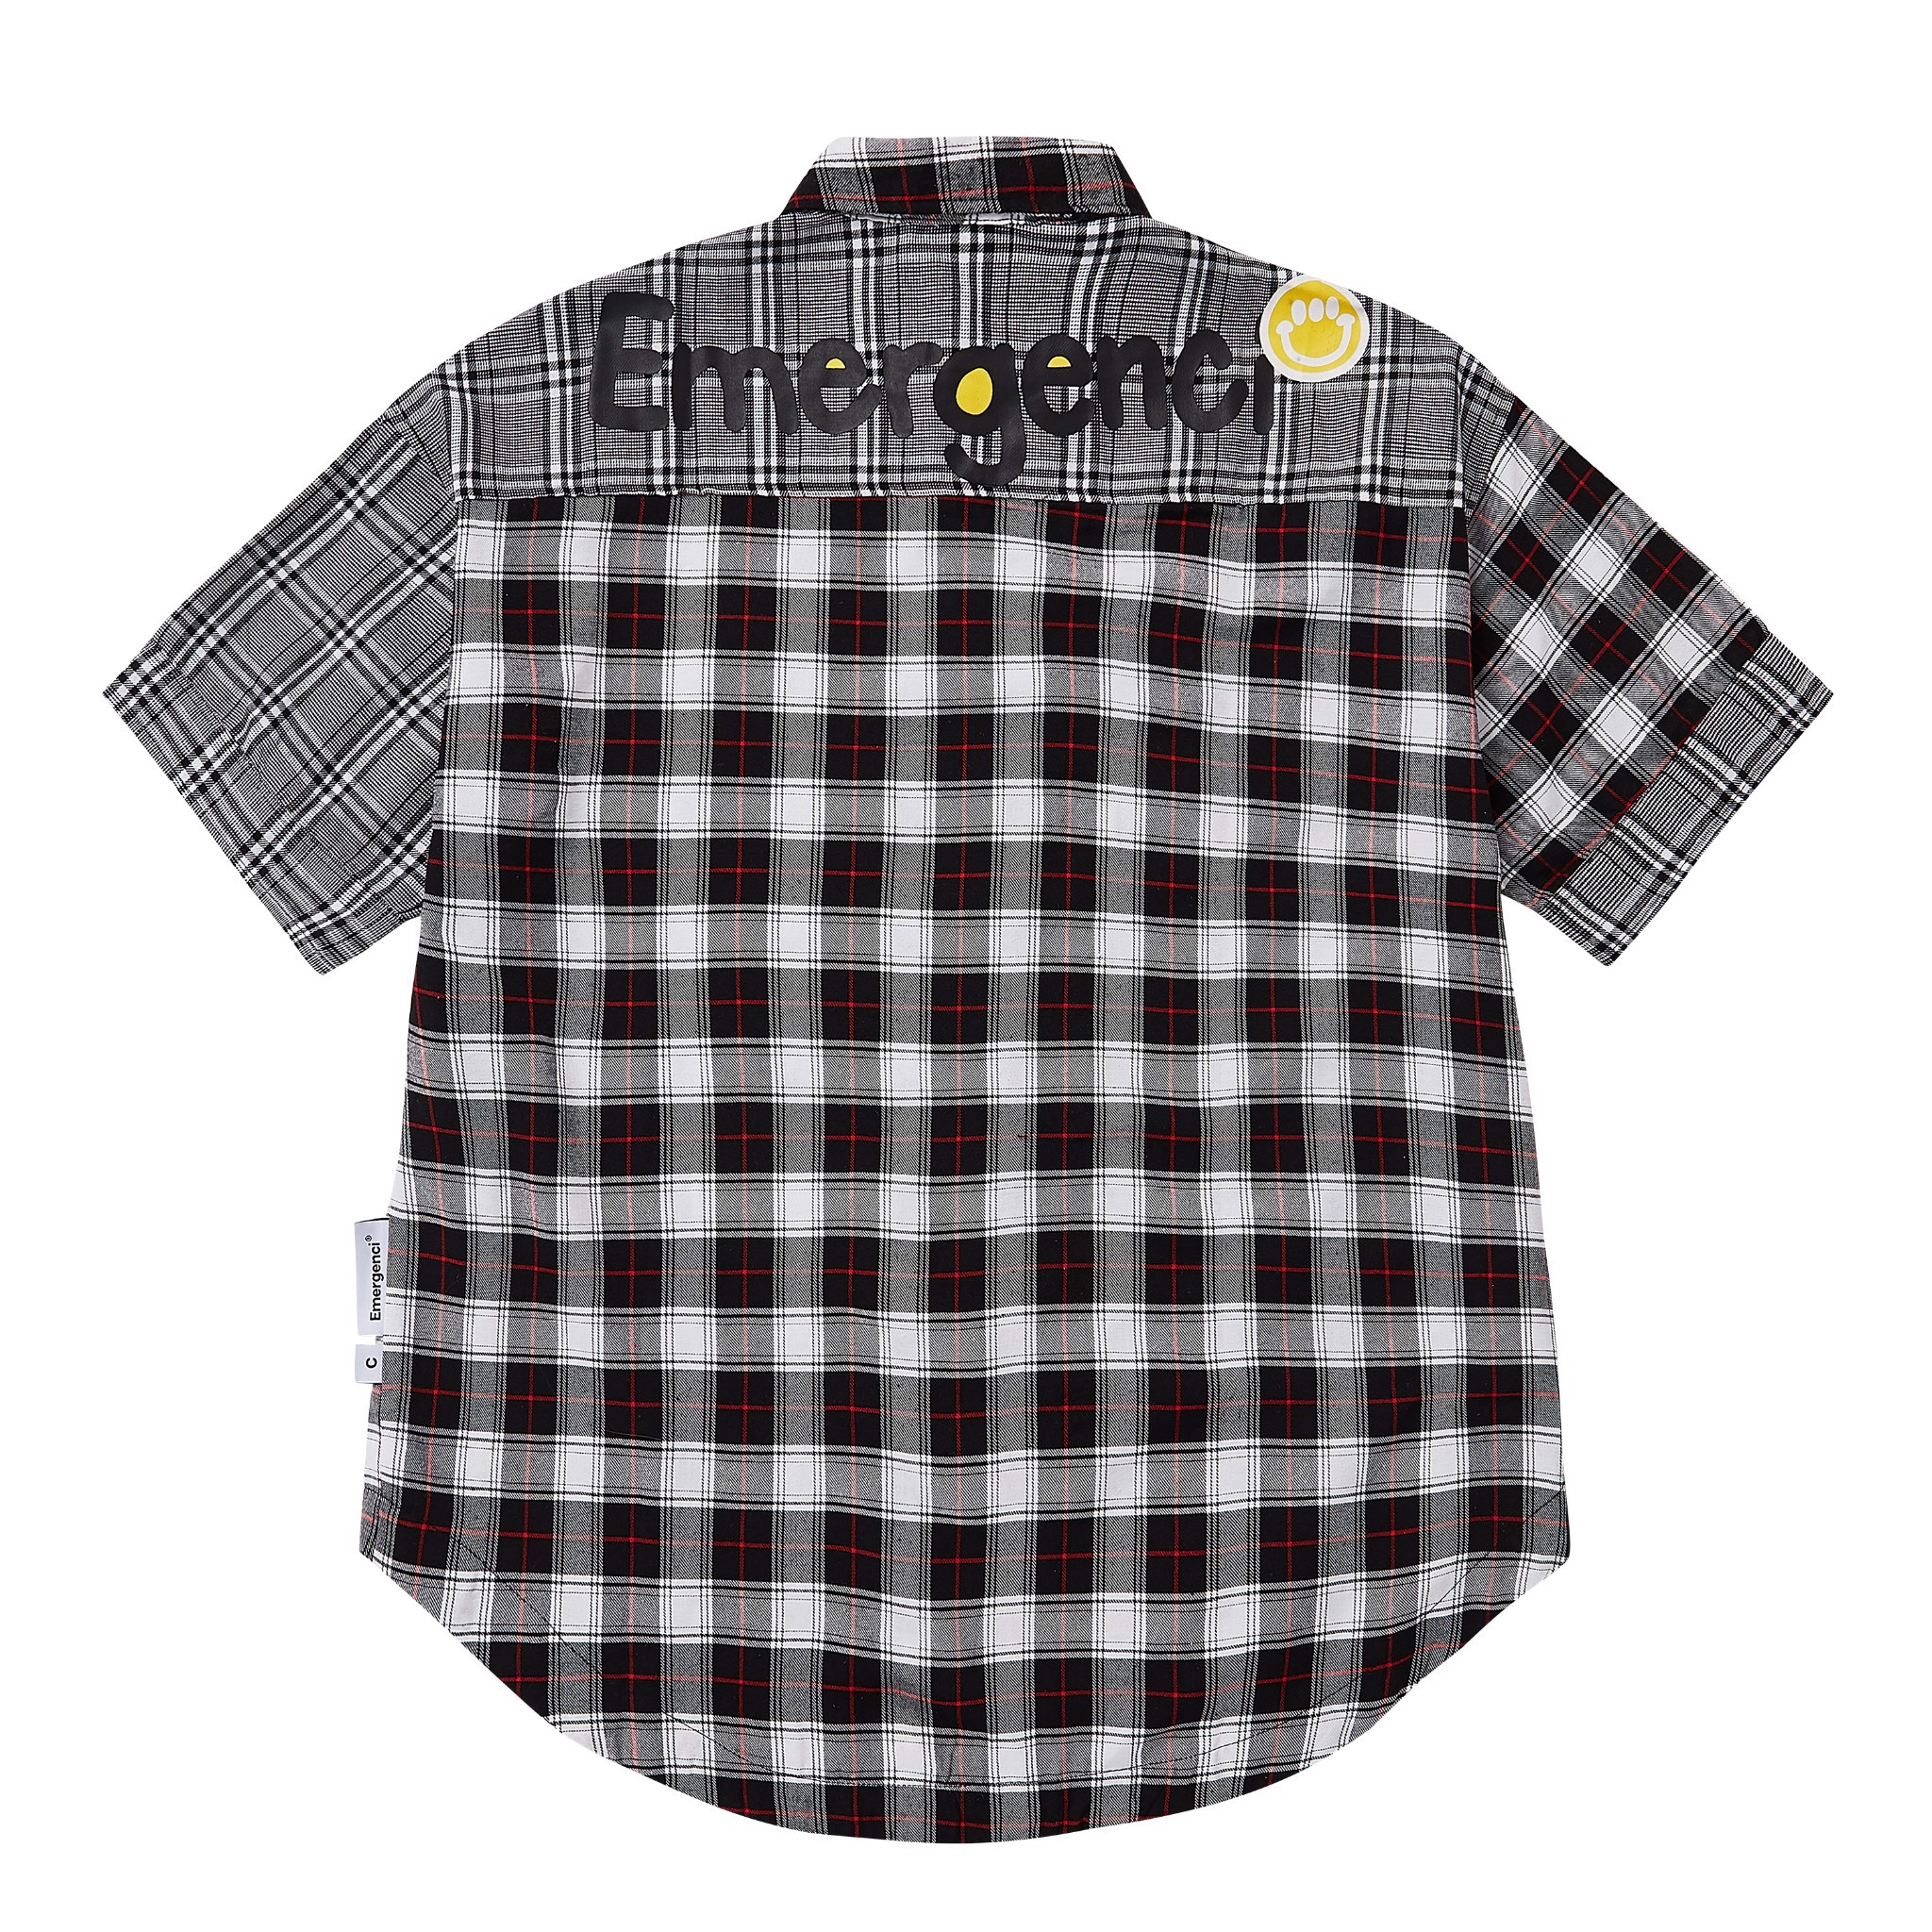 EMC Arrow Patchwork Shirt